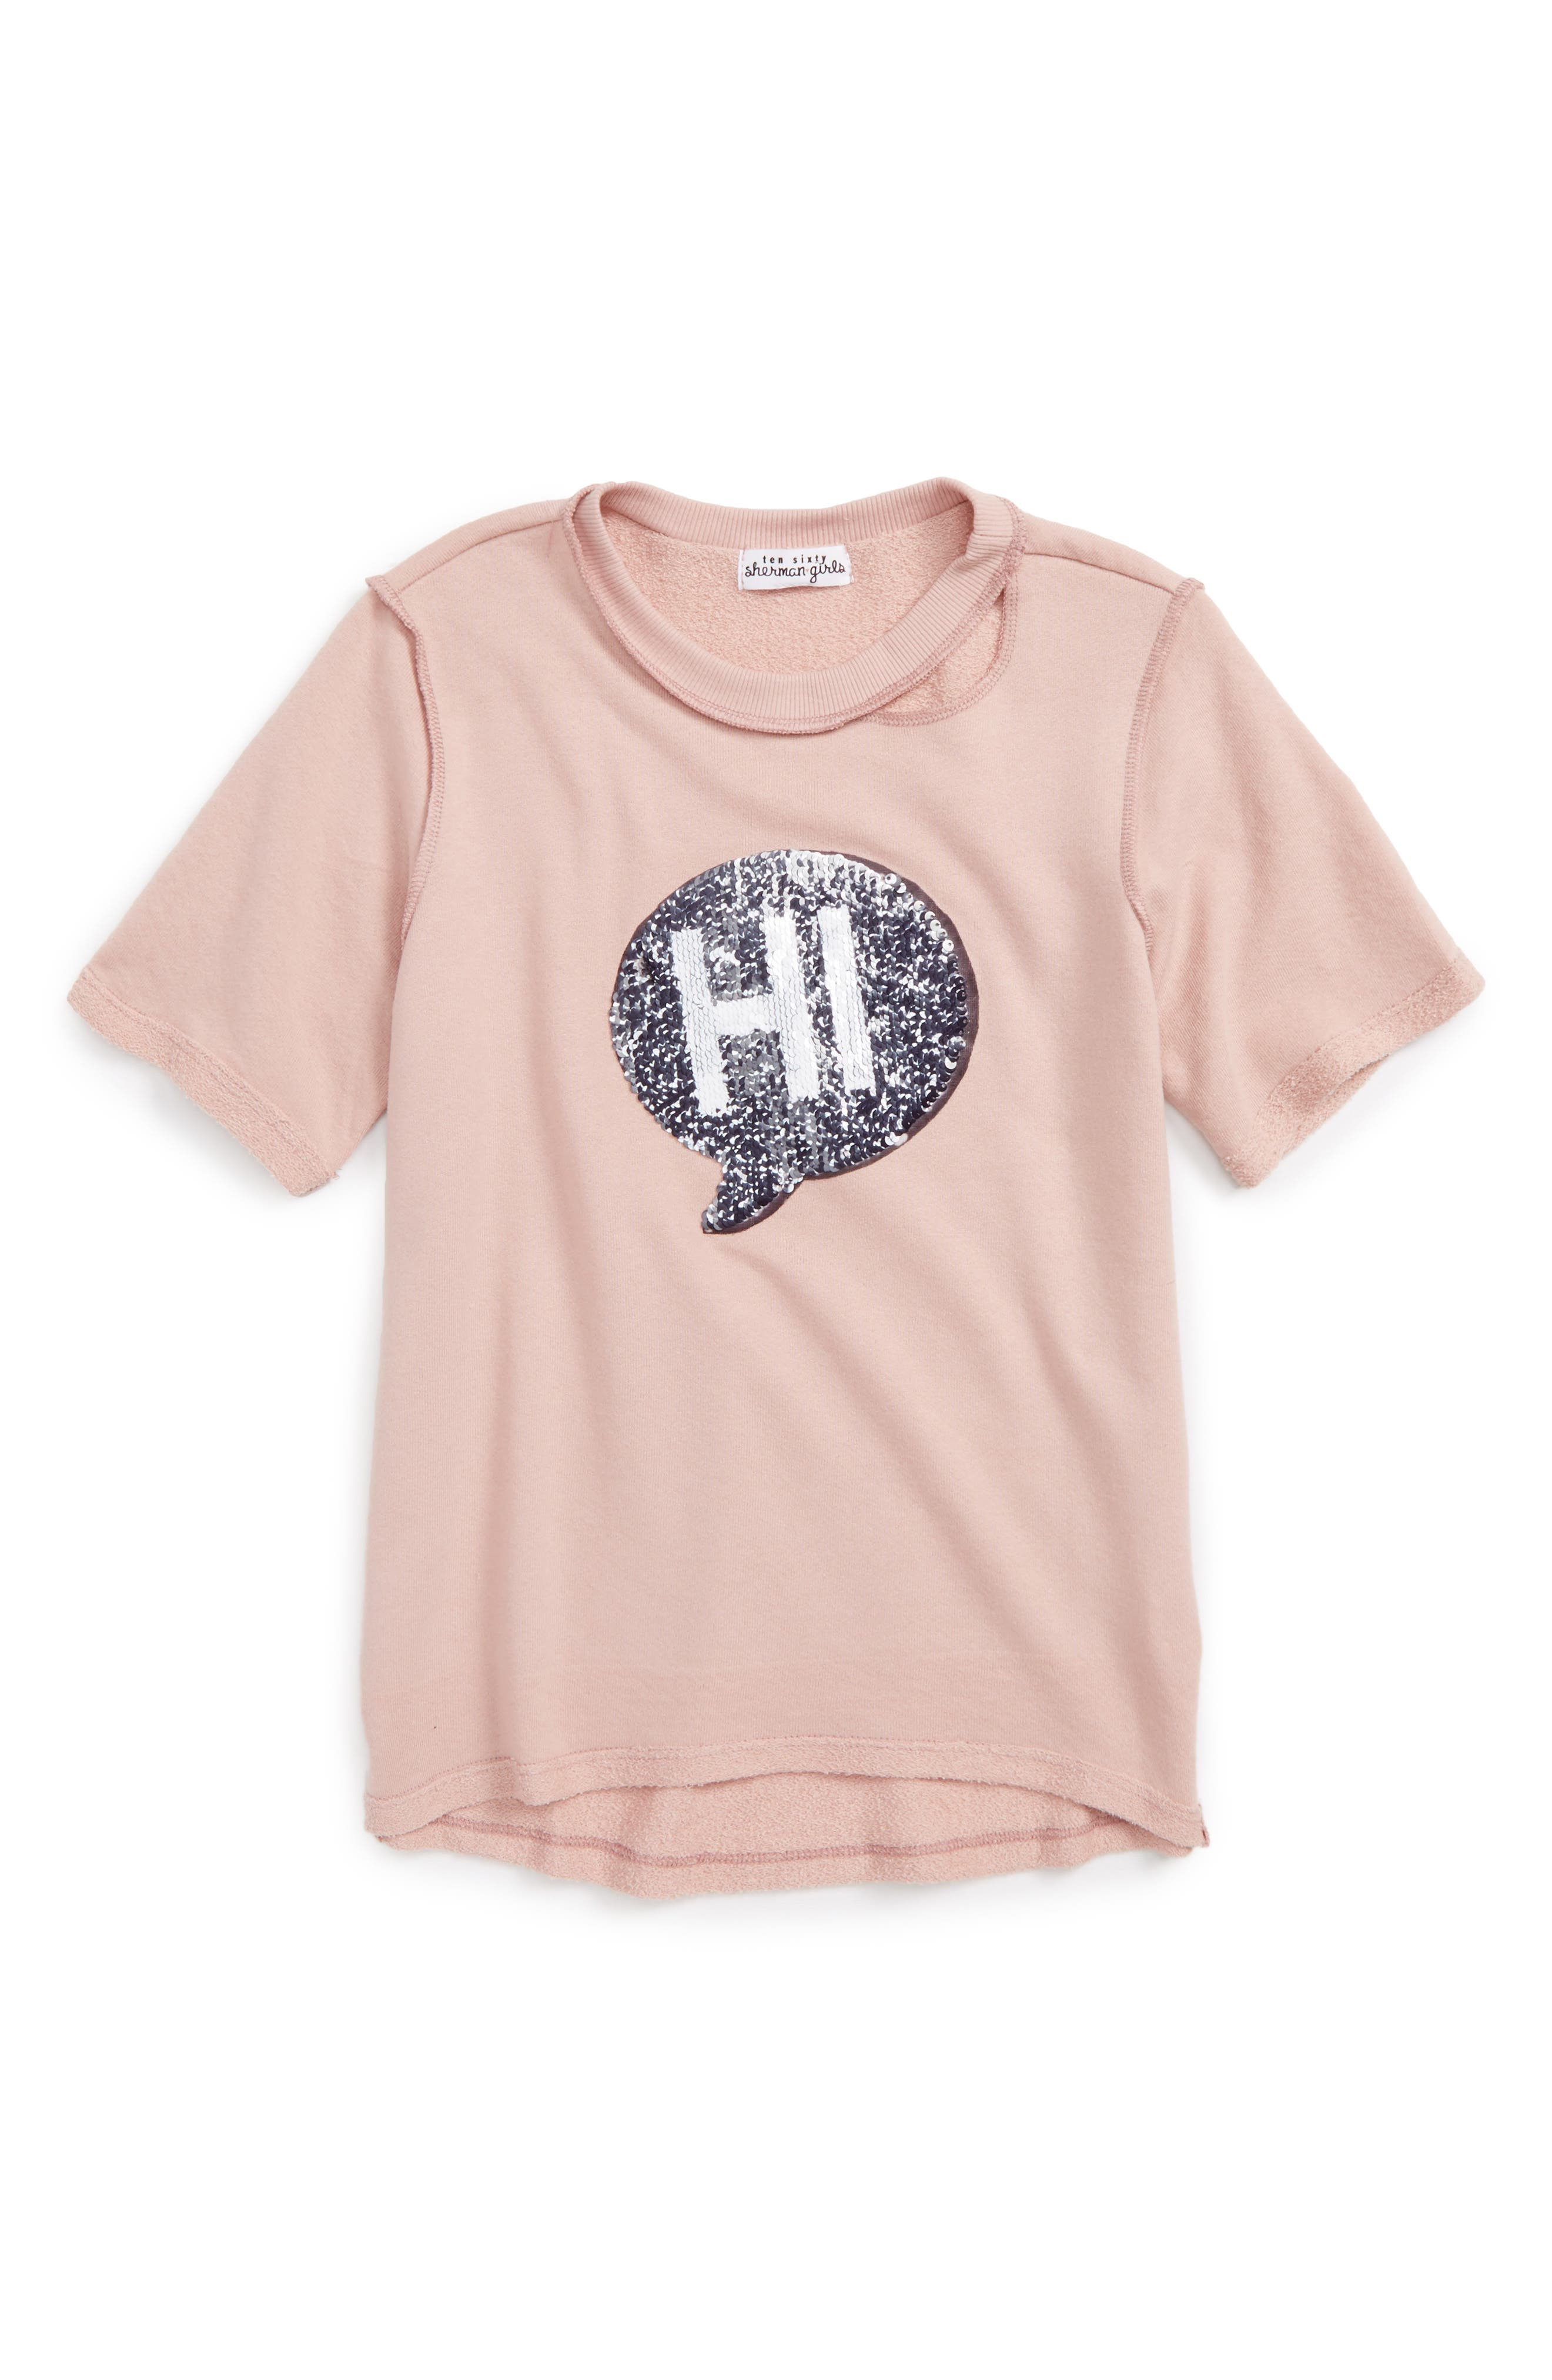 Ten Sixty Sherman Hi/Bye Sequin Tee (Big Girls)